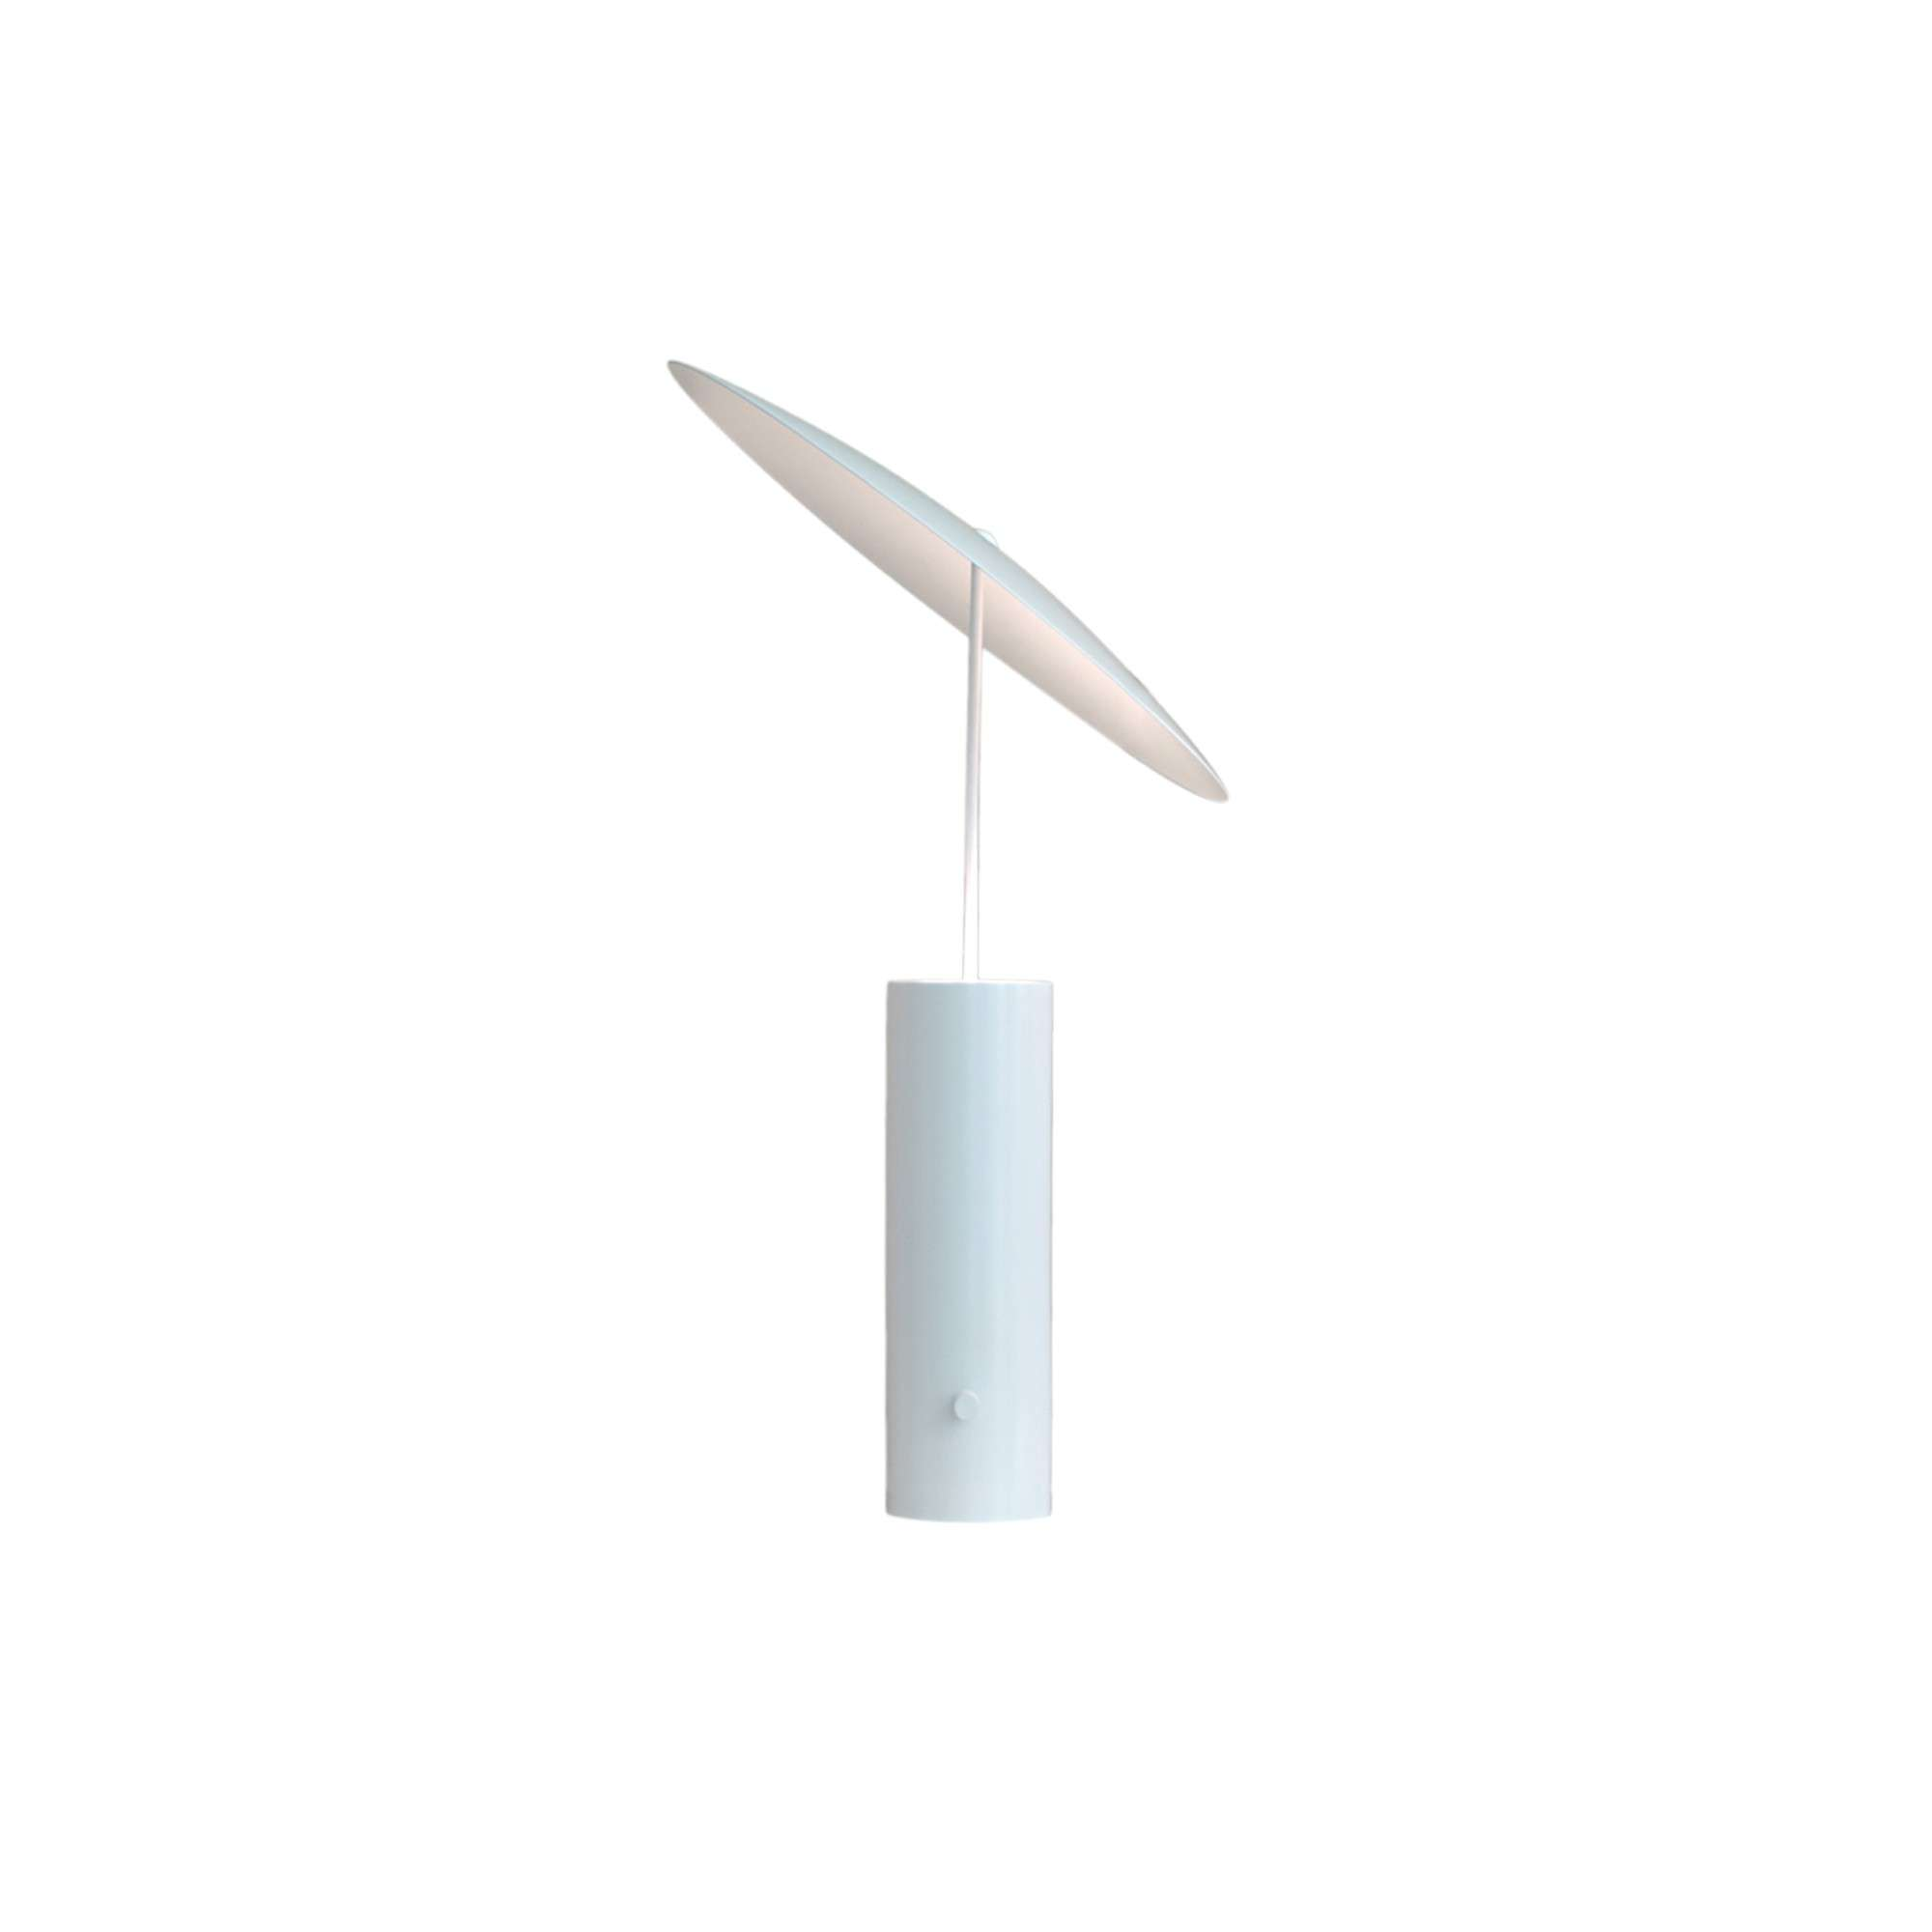 À Innermost Blanc Lampe Parasol Poser Led mnON80wv